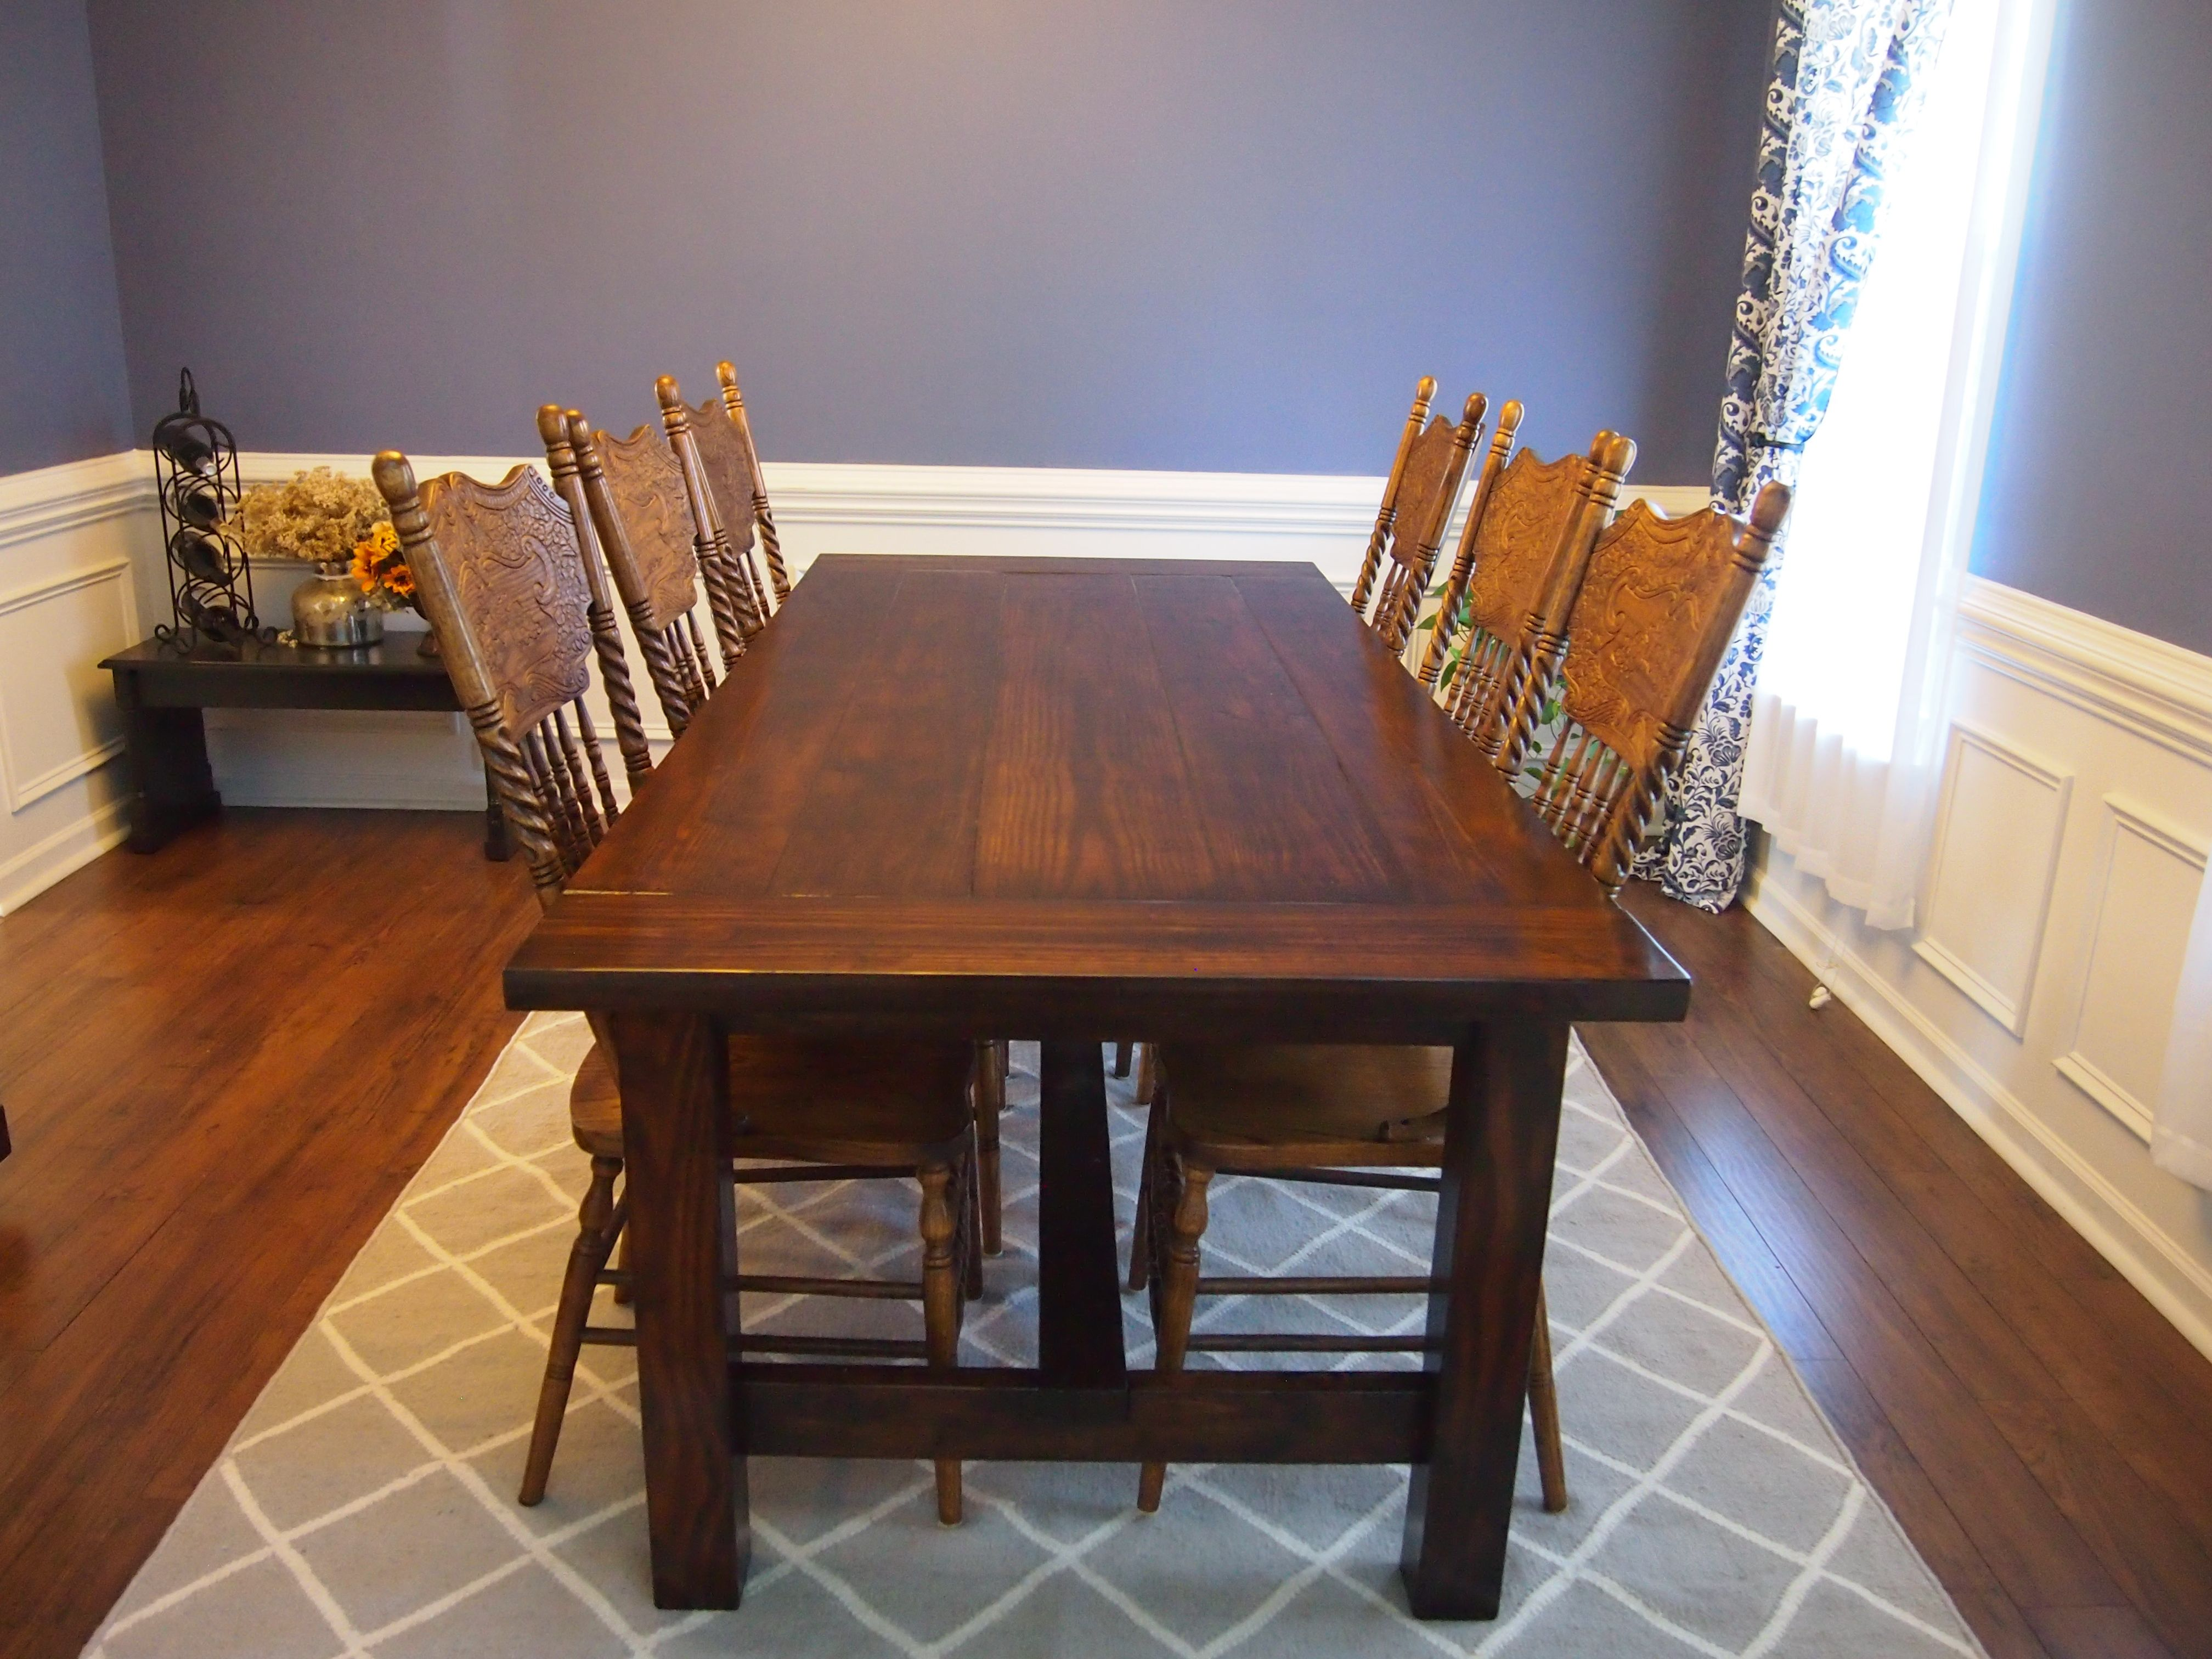 diy farmhouse table do it yourself home projects from ana white farmhouse dining room table on farmhouse kitchen table diy id=61139